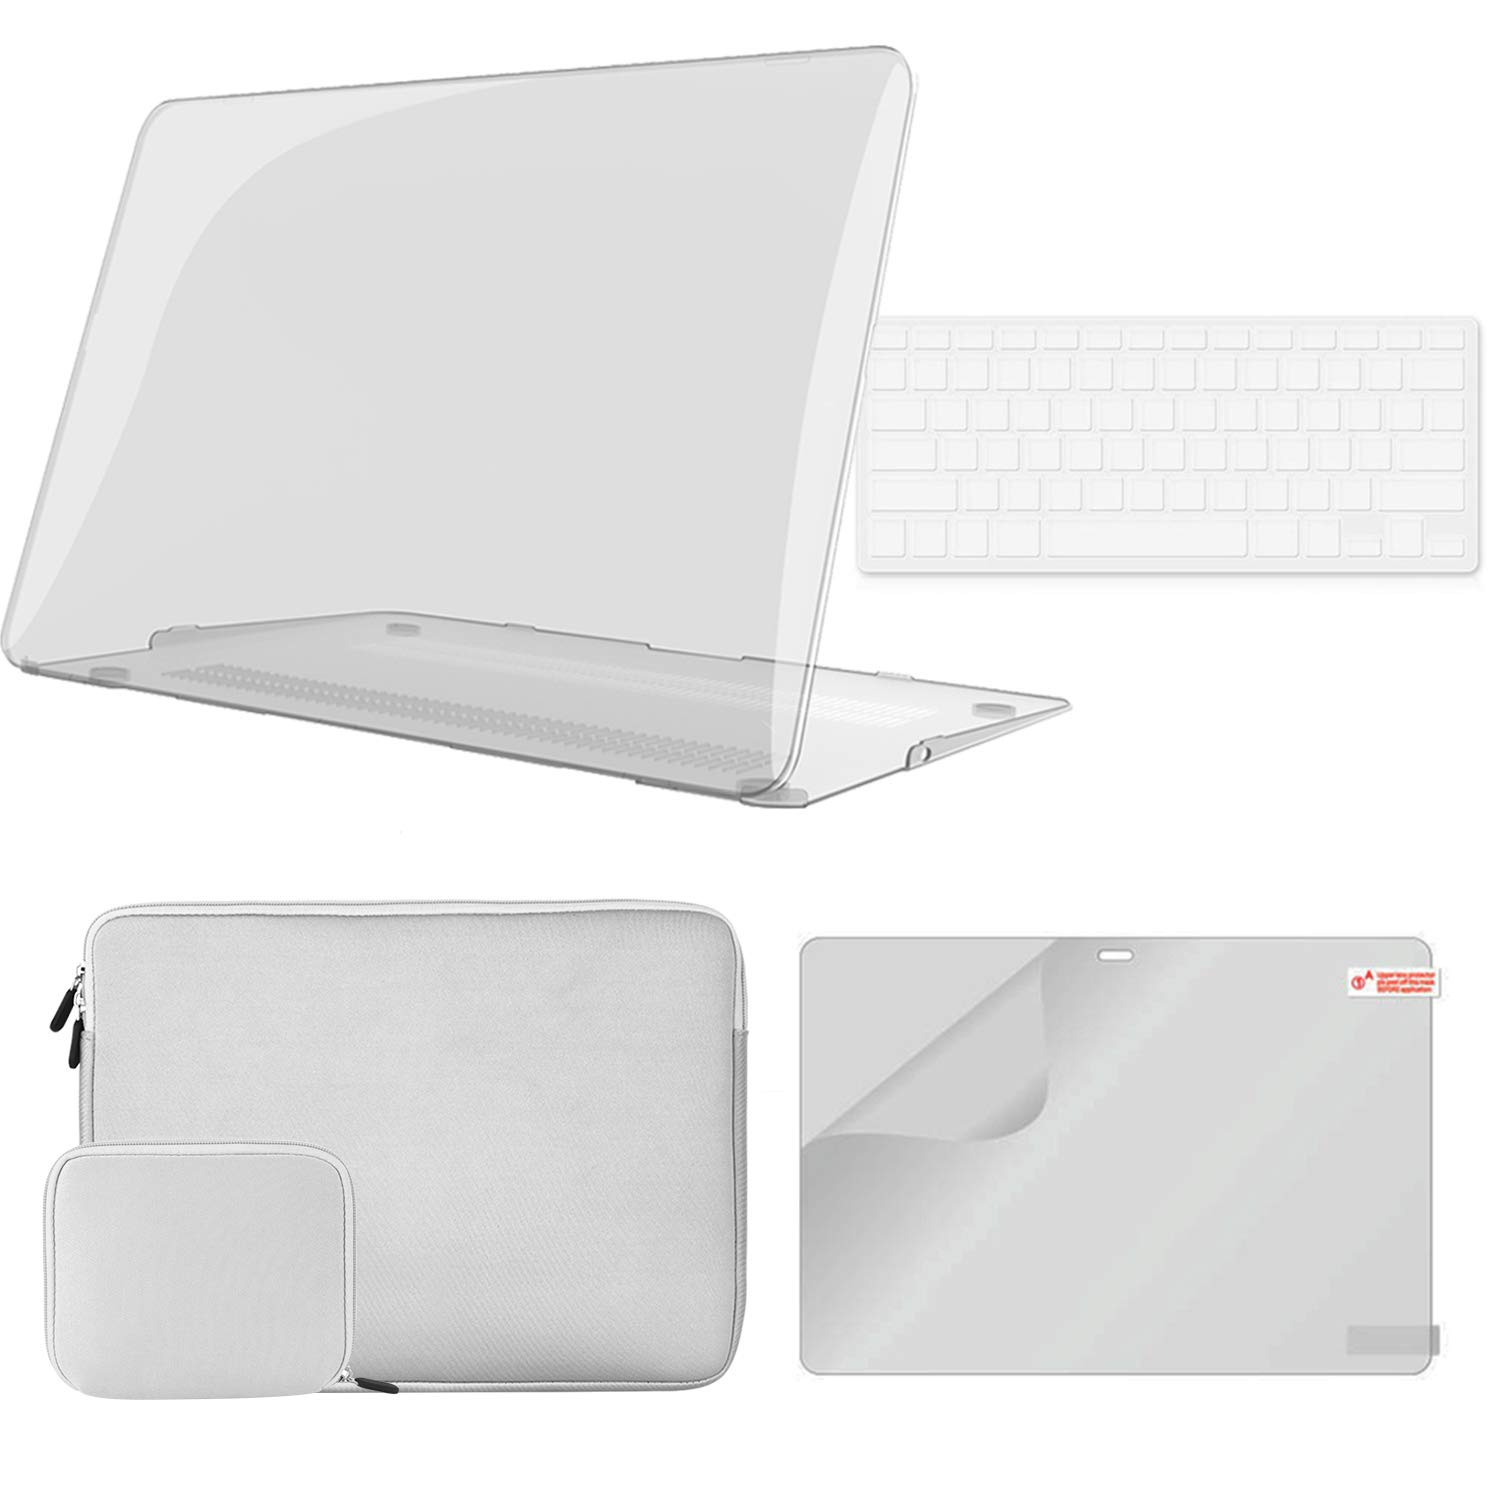 iCasso MacBook Pro 13 inch Case A2159/A1989/A1706/A1708 Bundle 4 in 1, Plastic Hard Shell Case, Sleeve, Screen Protector…